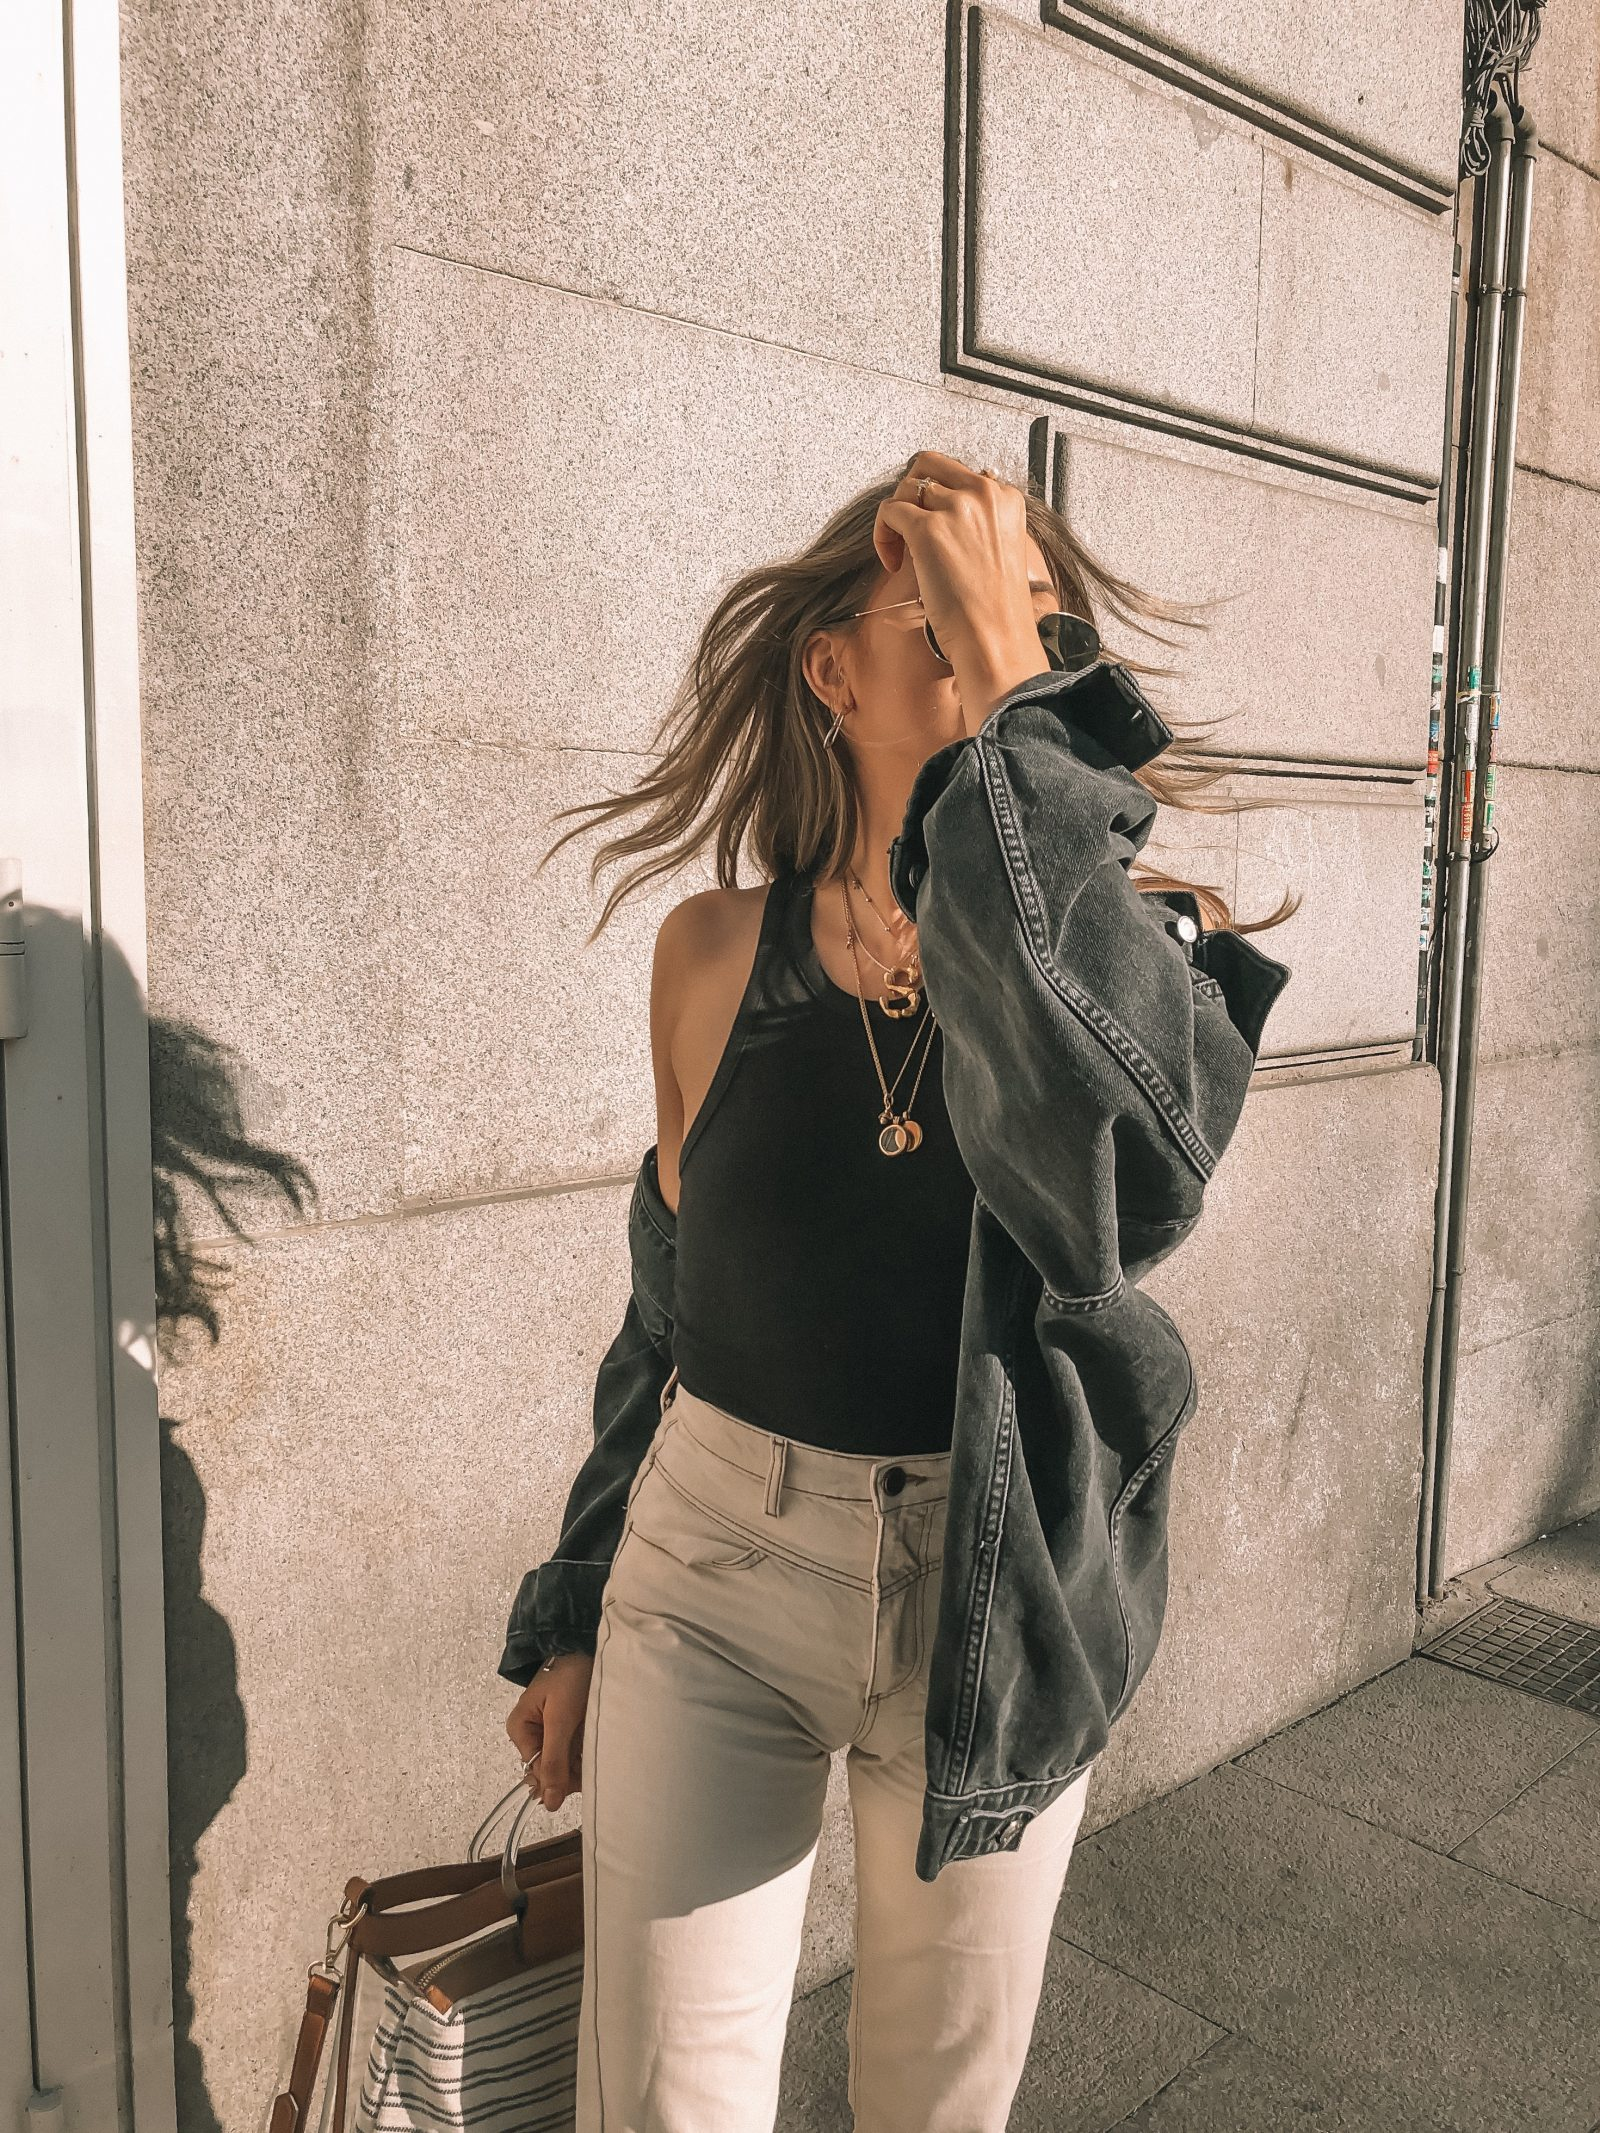 Madrid Outfit Diaries - Off White Stradivarius Jeans